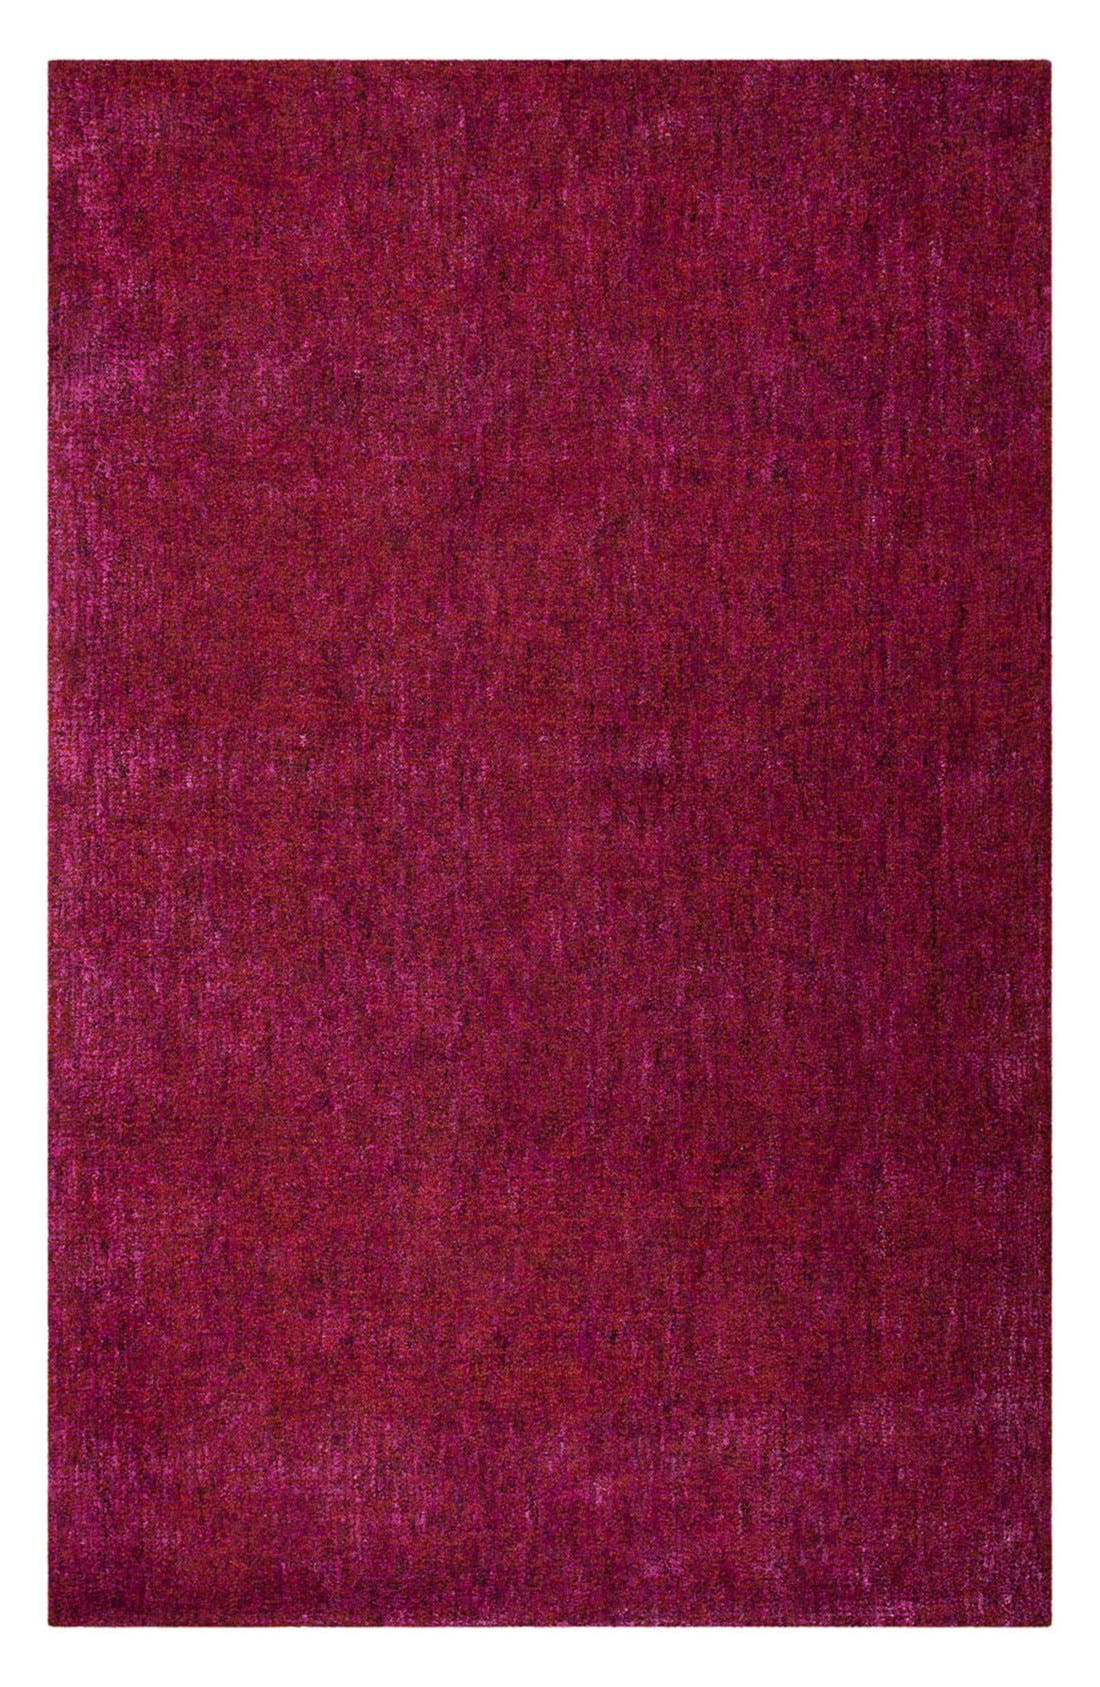 'stuyvesant' rug,                         Main,                         color, Red